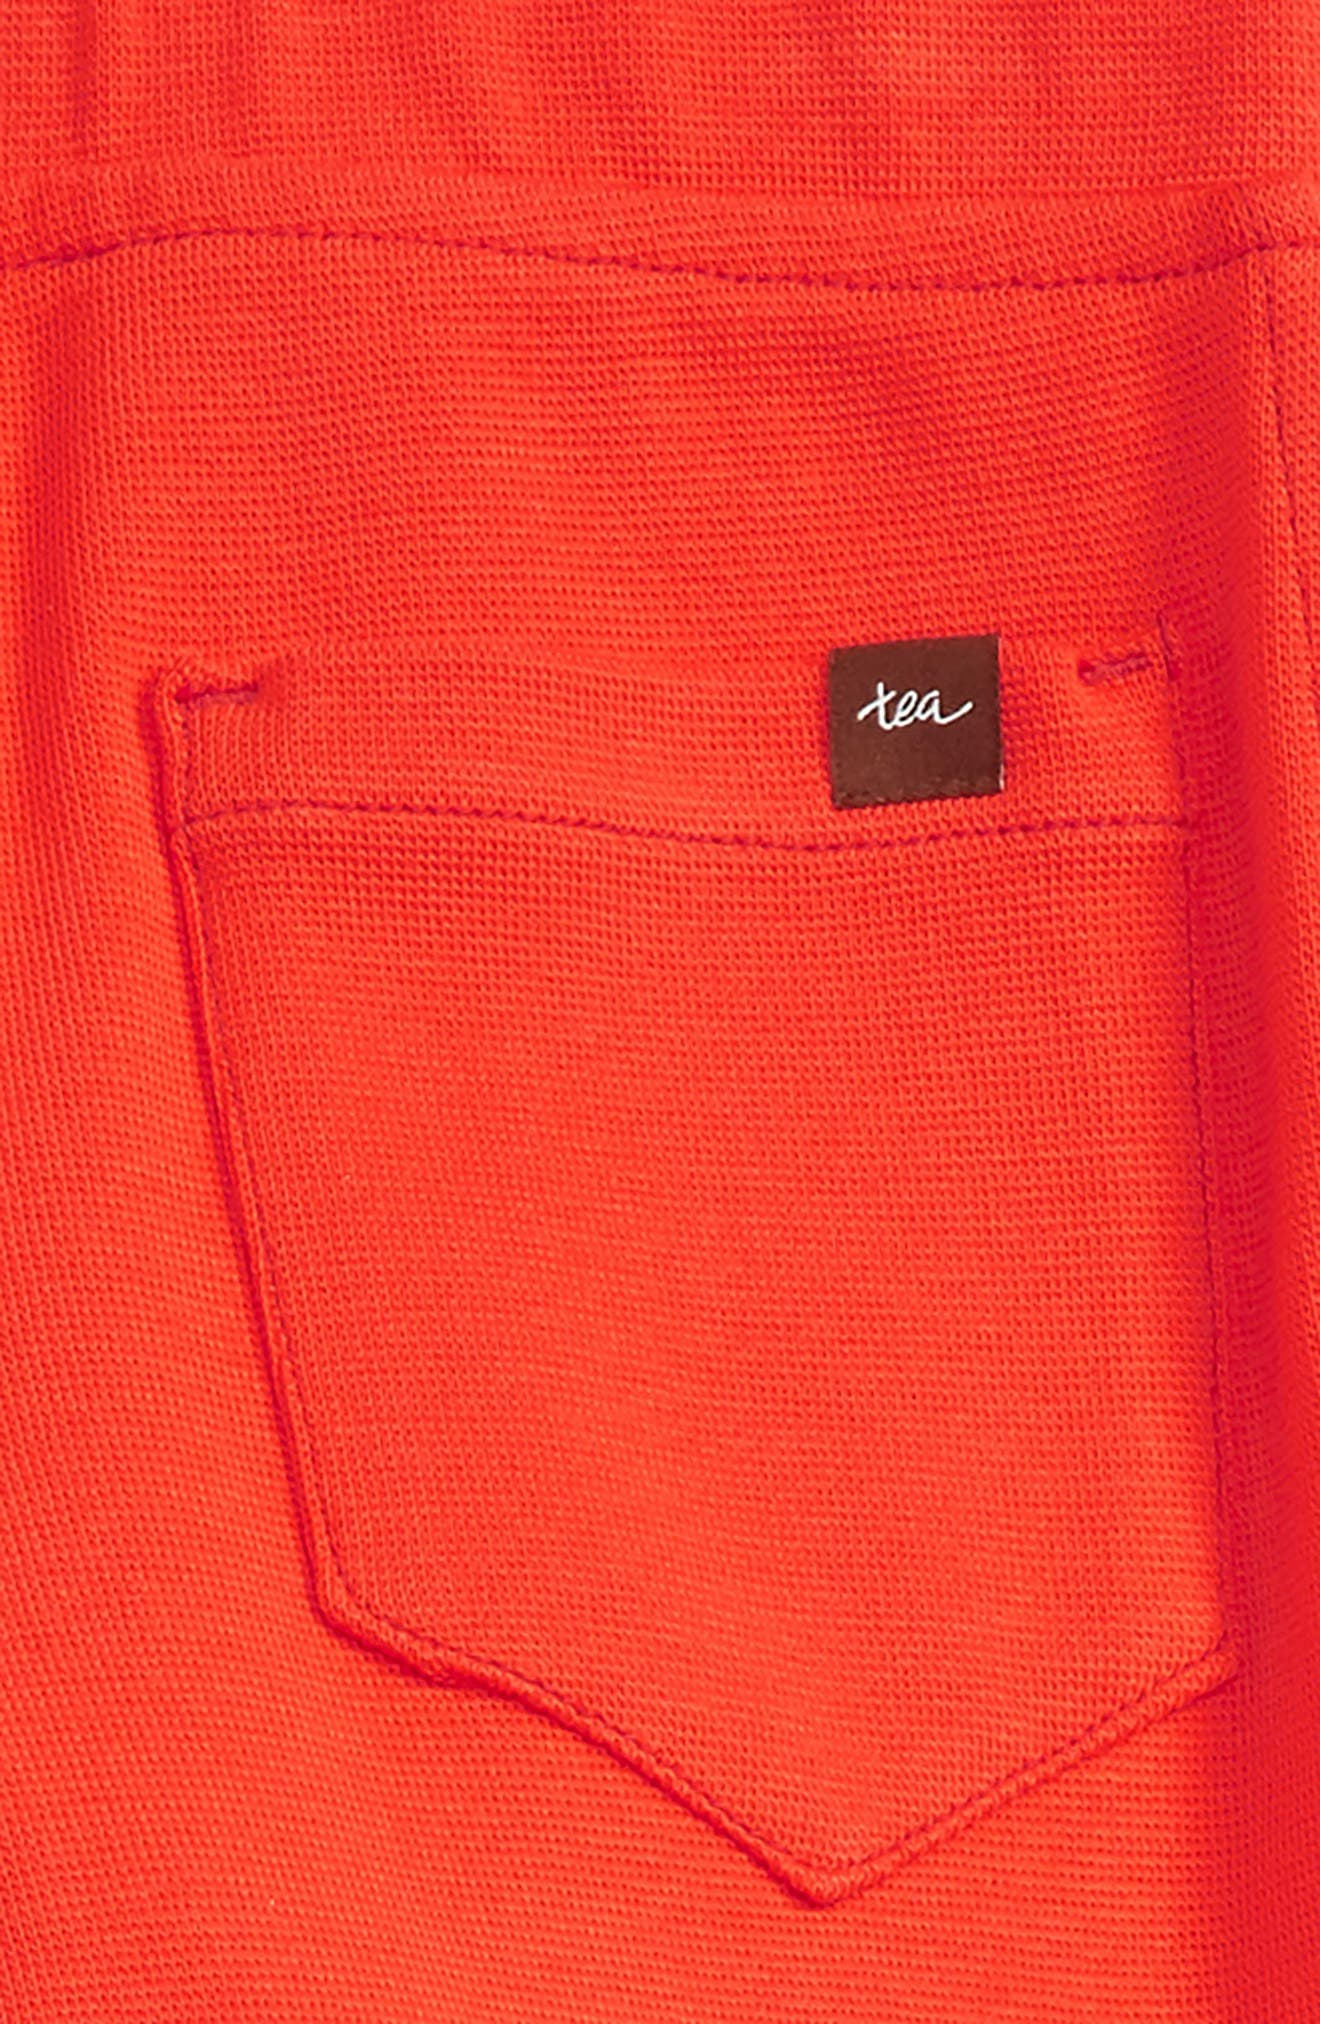 Alternate Image 3  - Tea Collection Ribbed Moto Pants (Toddler Girls, Little Girls & Big Girls)